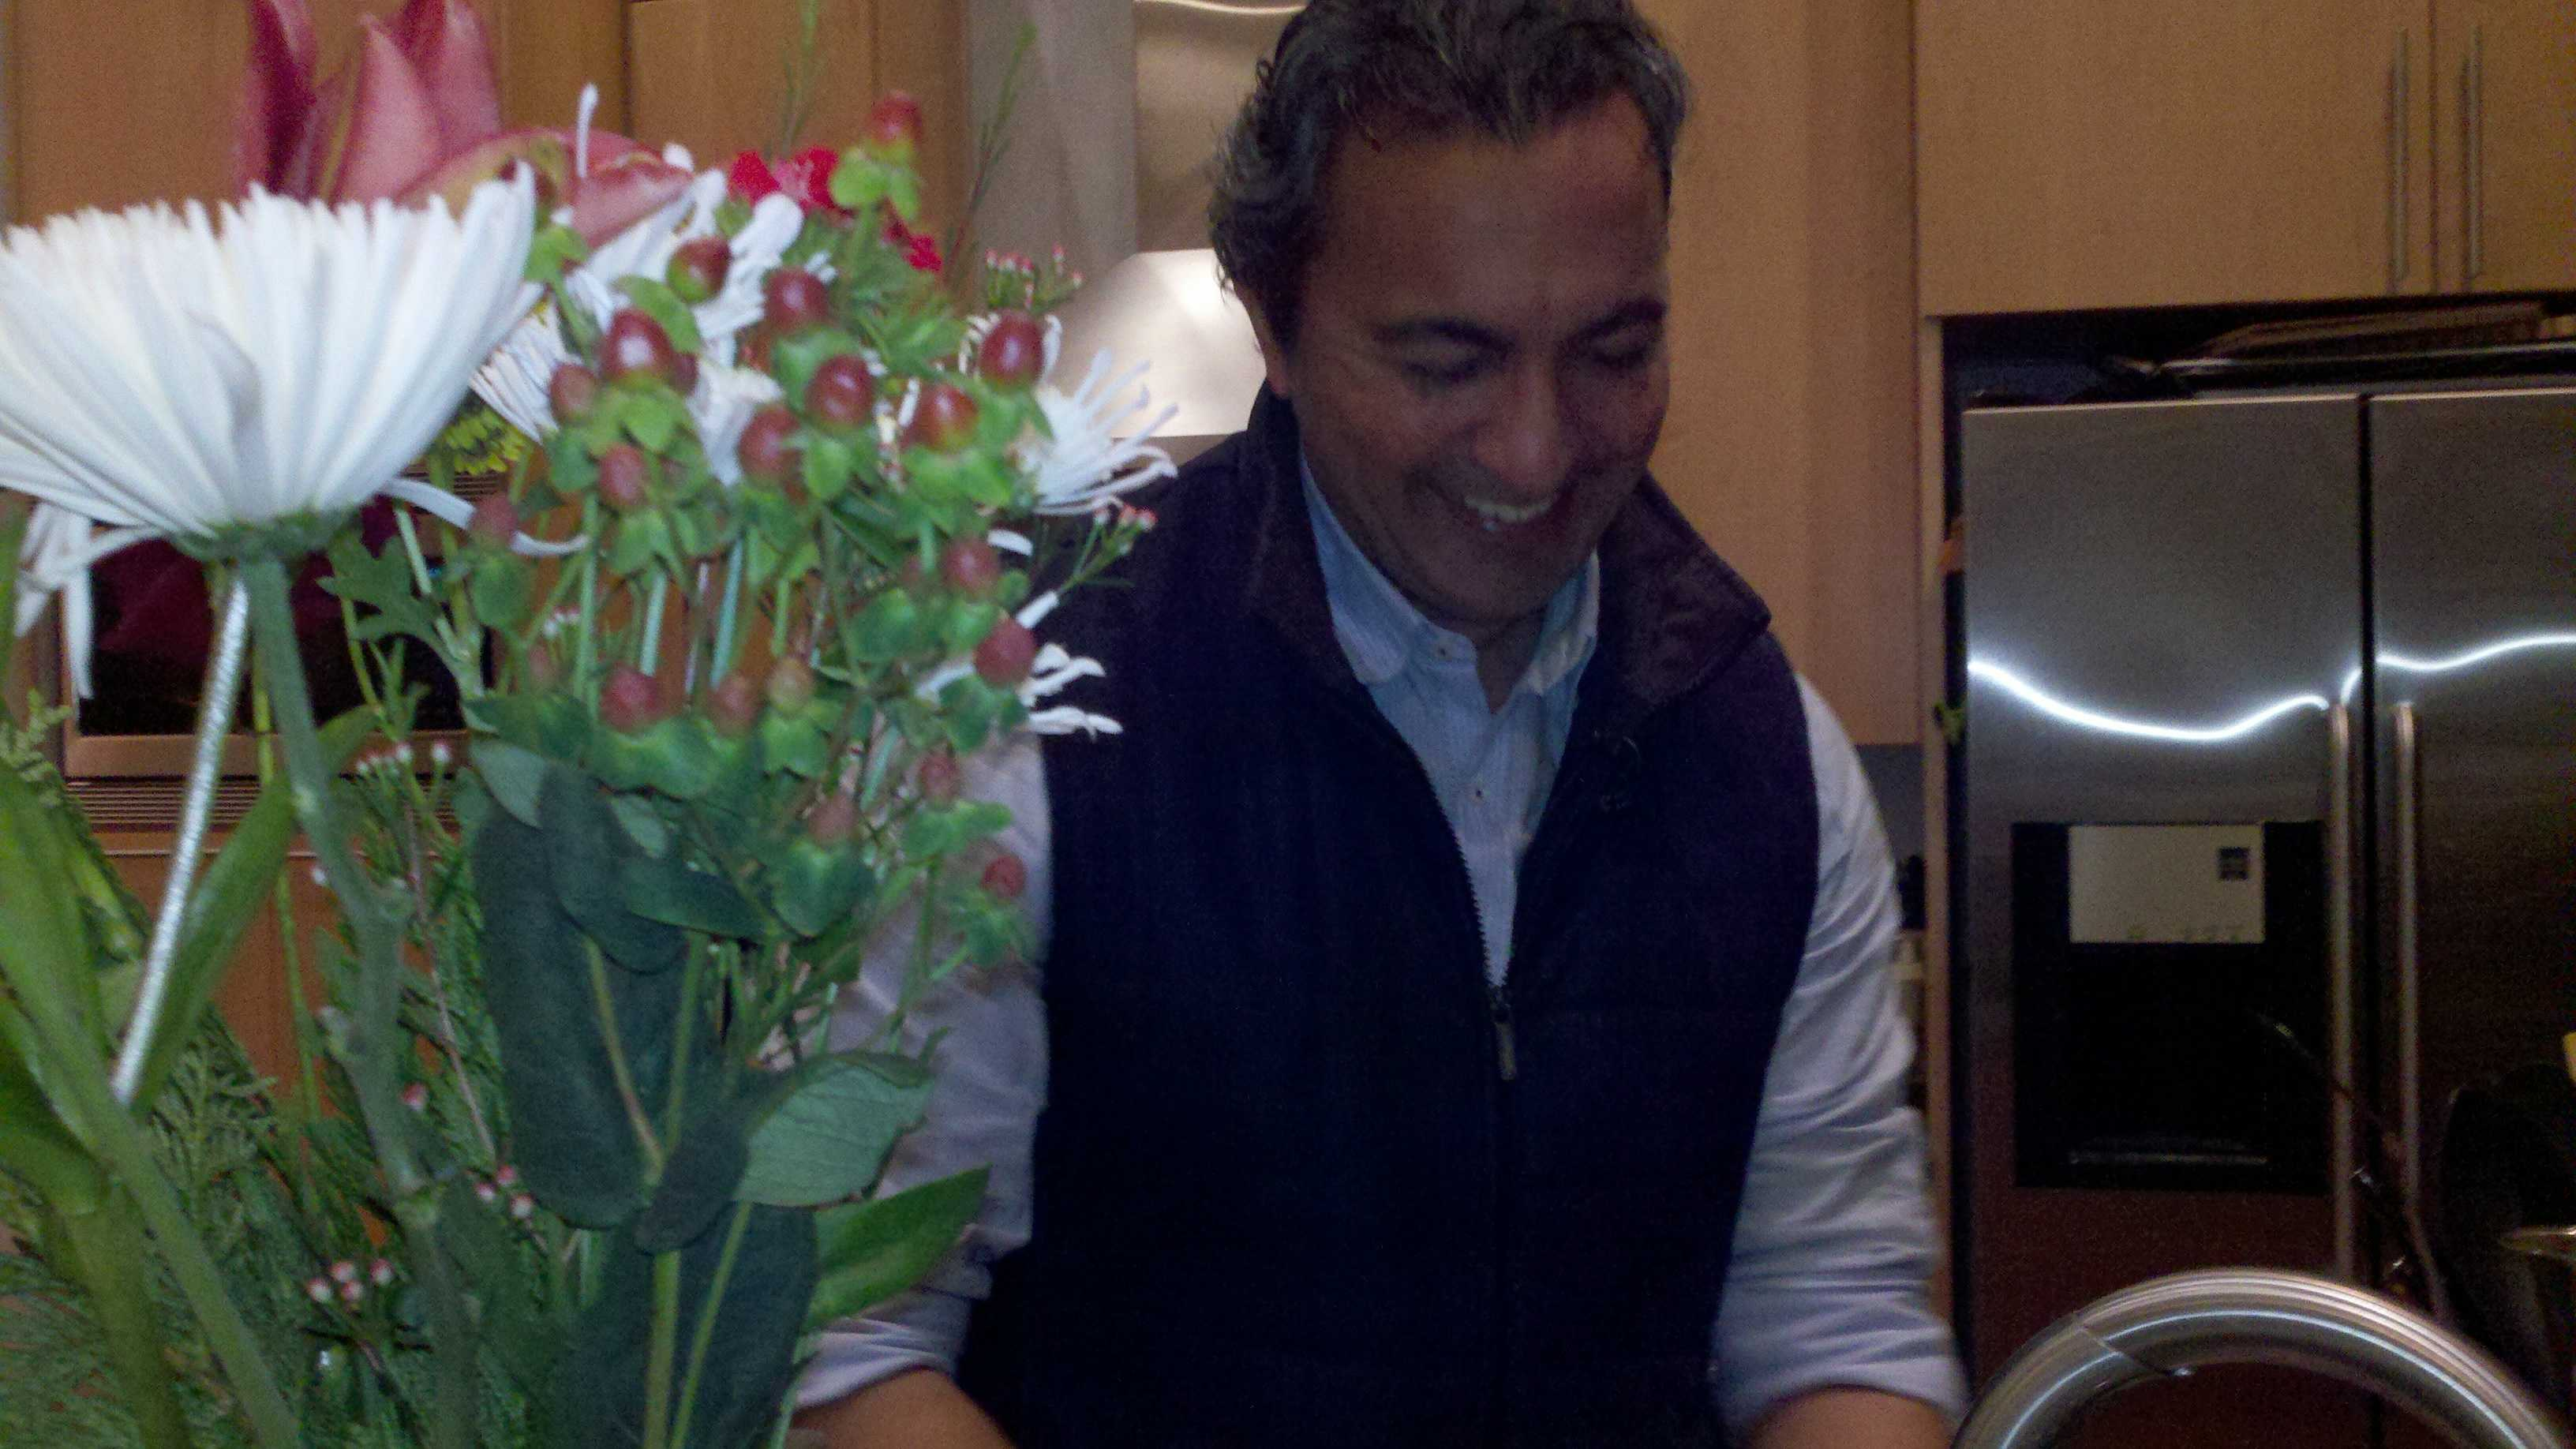 Ami Bera washes dishes at his home in Elk Grove (Dec. 18, 2012).